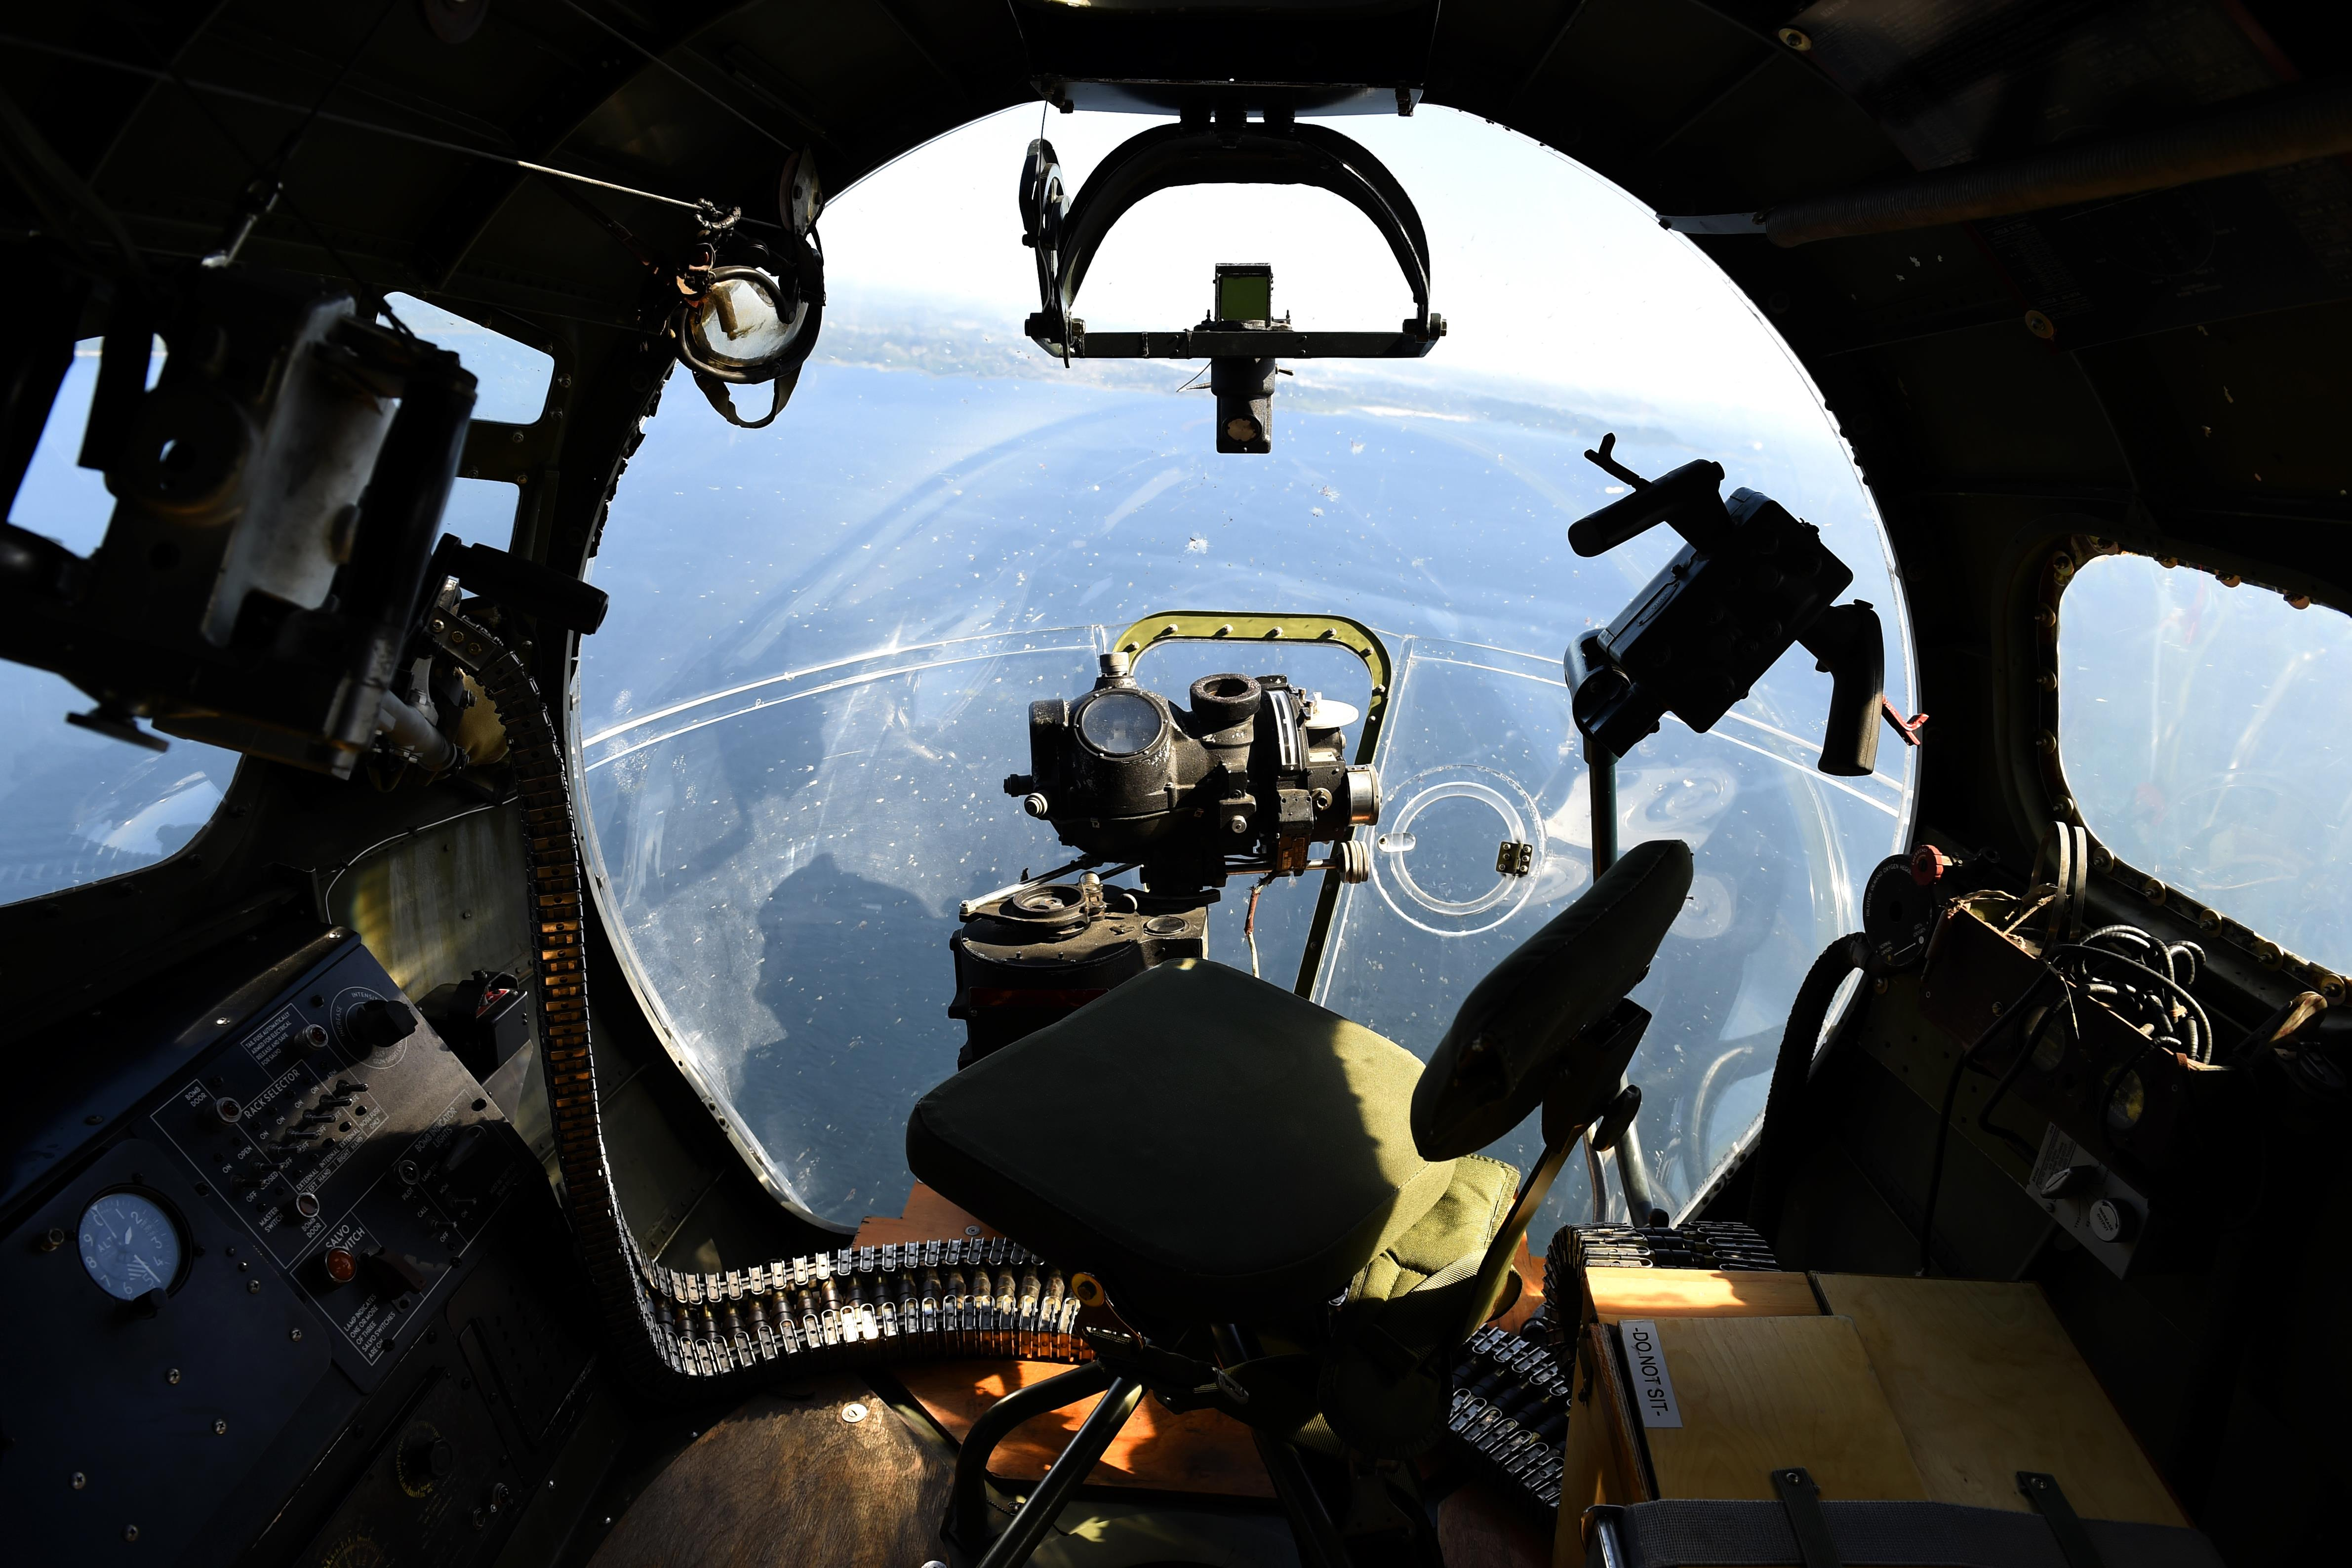 Living History: WWII vets and B17 take to the sky over Seattle